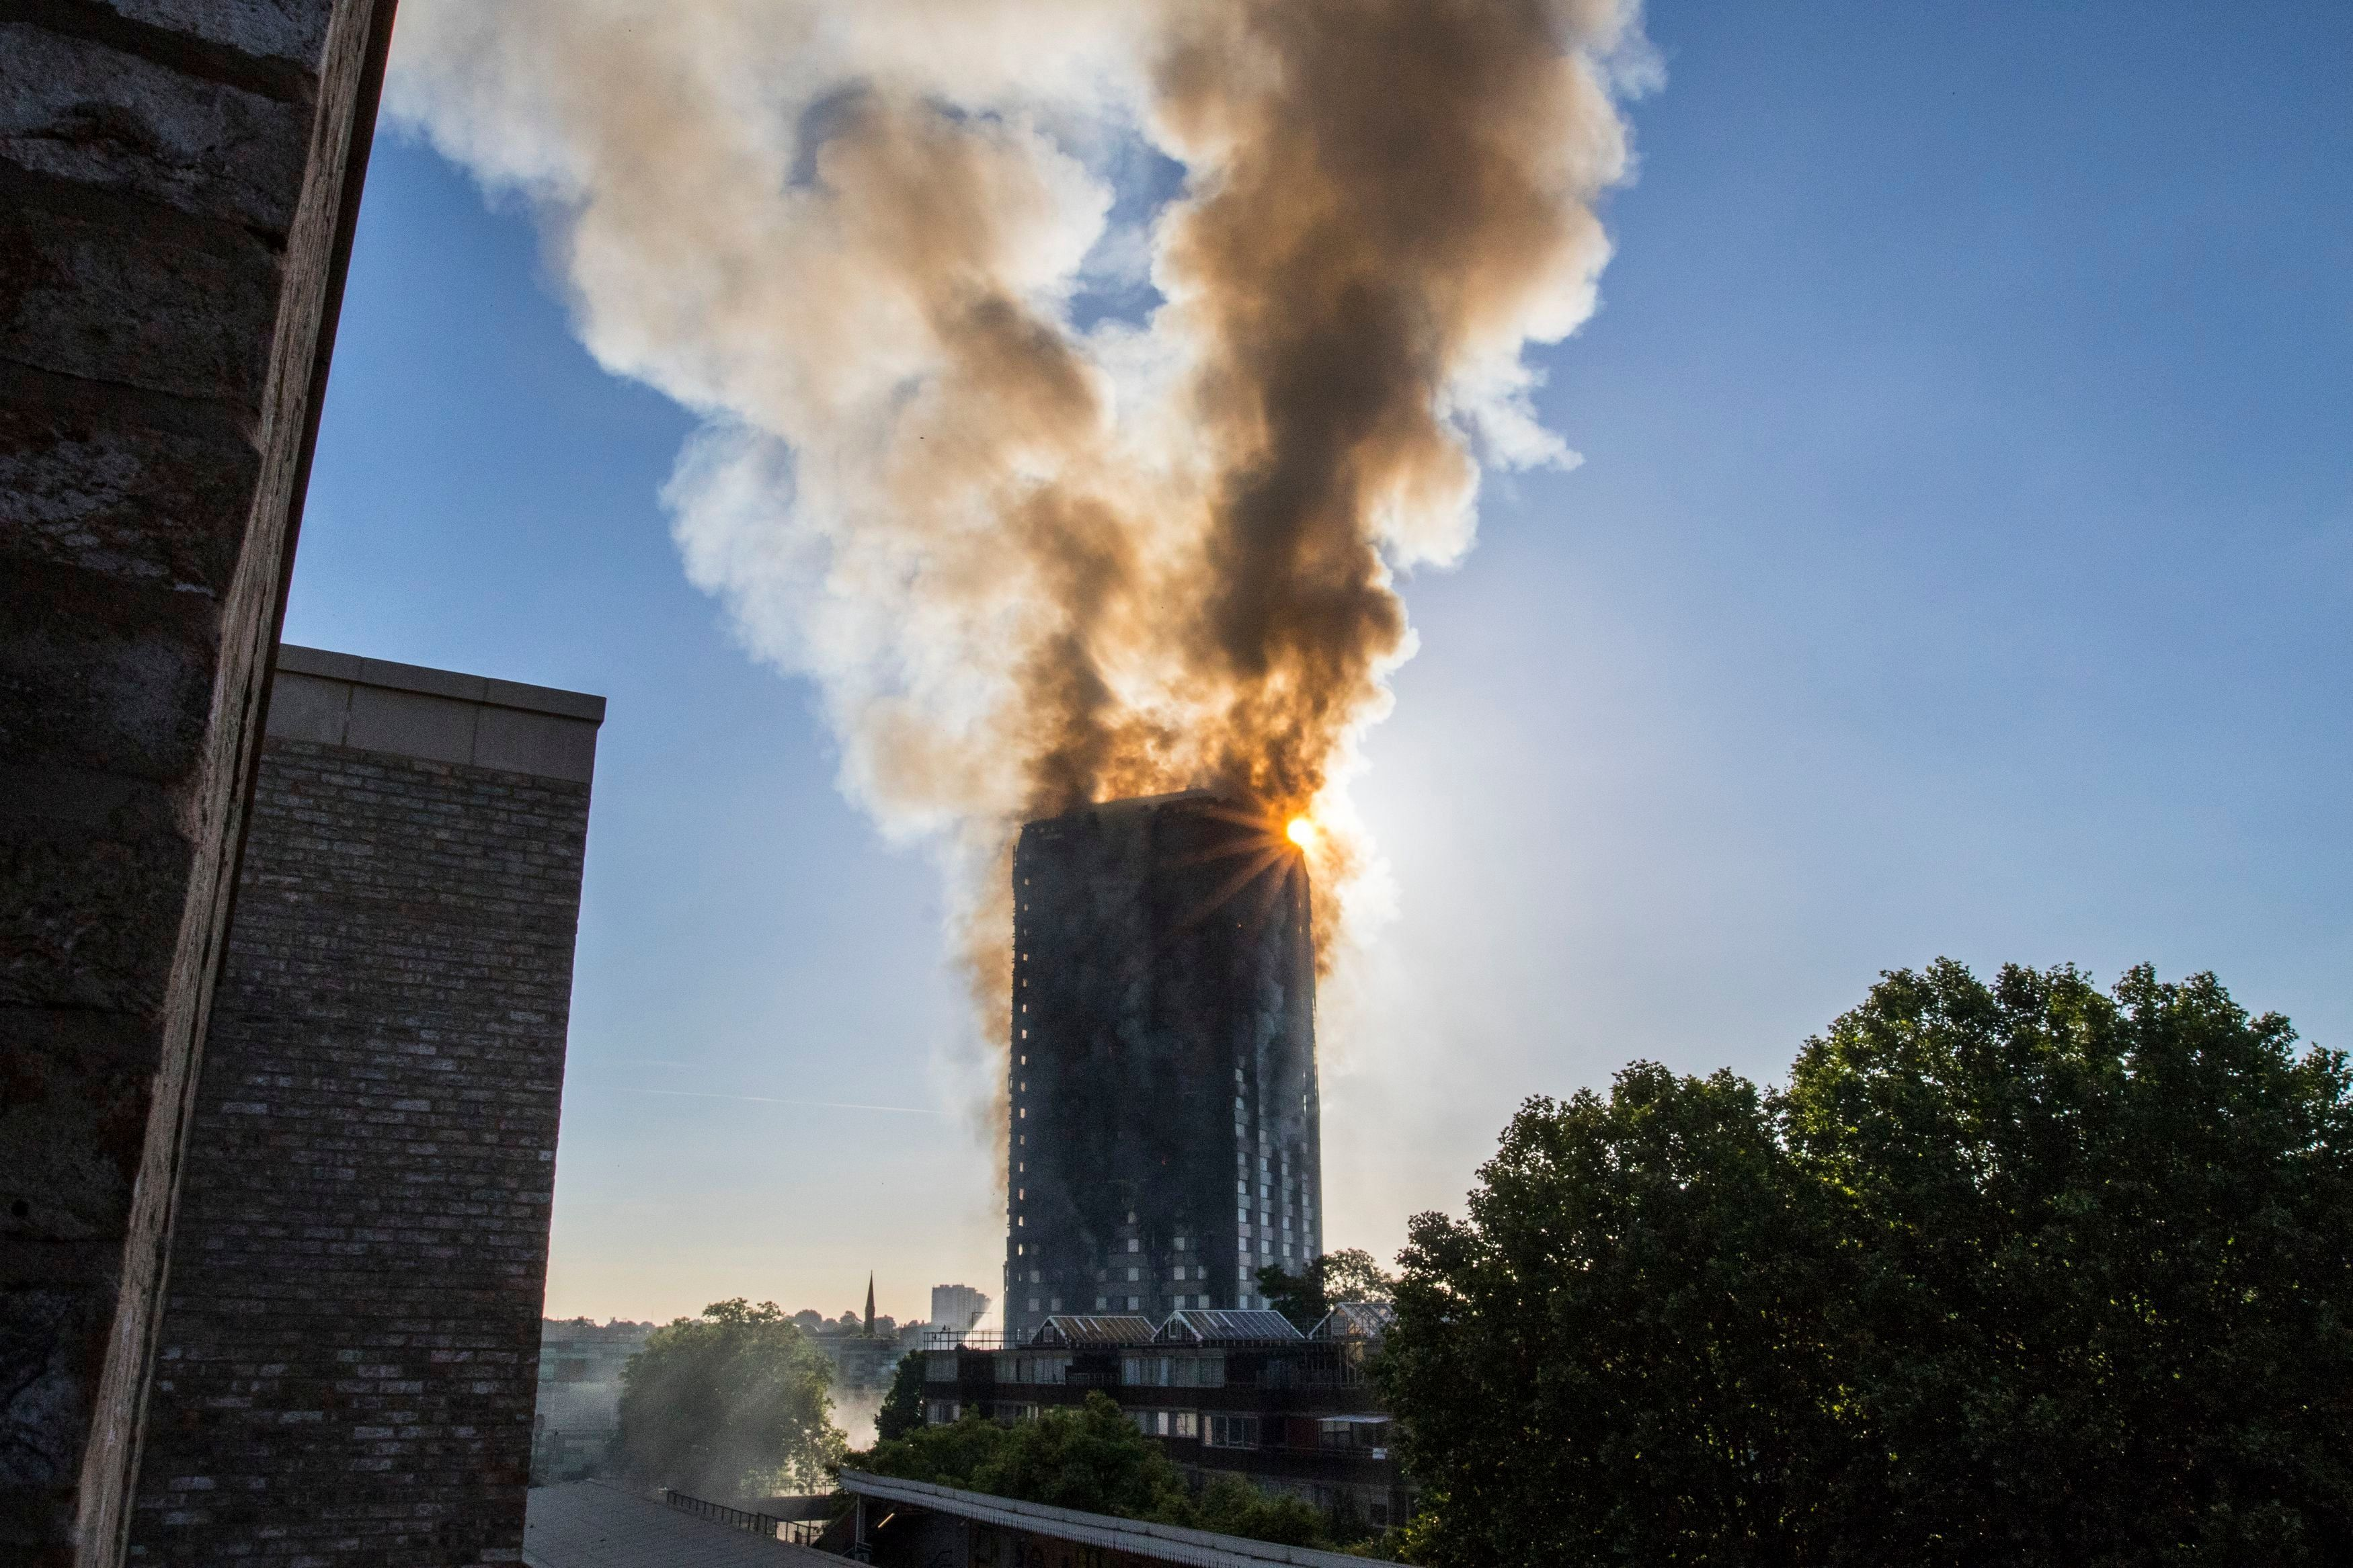 People Made Homeless By Grenfell Trauma Ignored In Government Figures